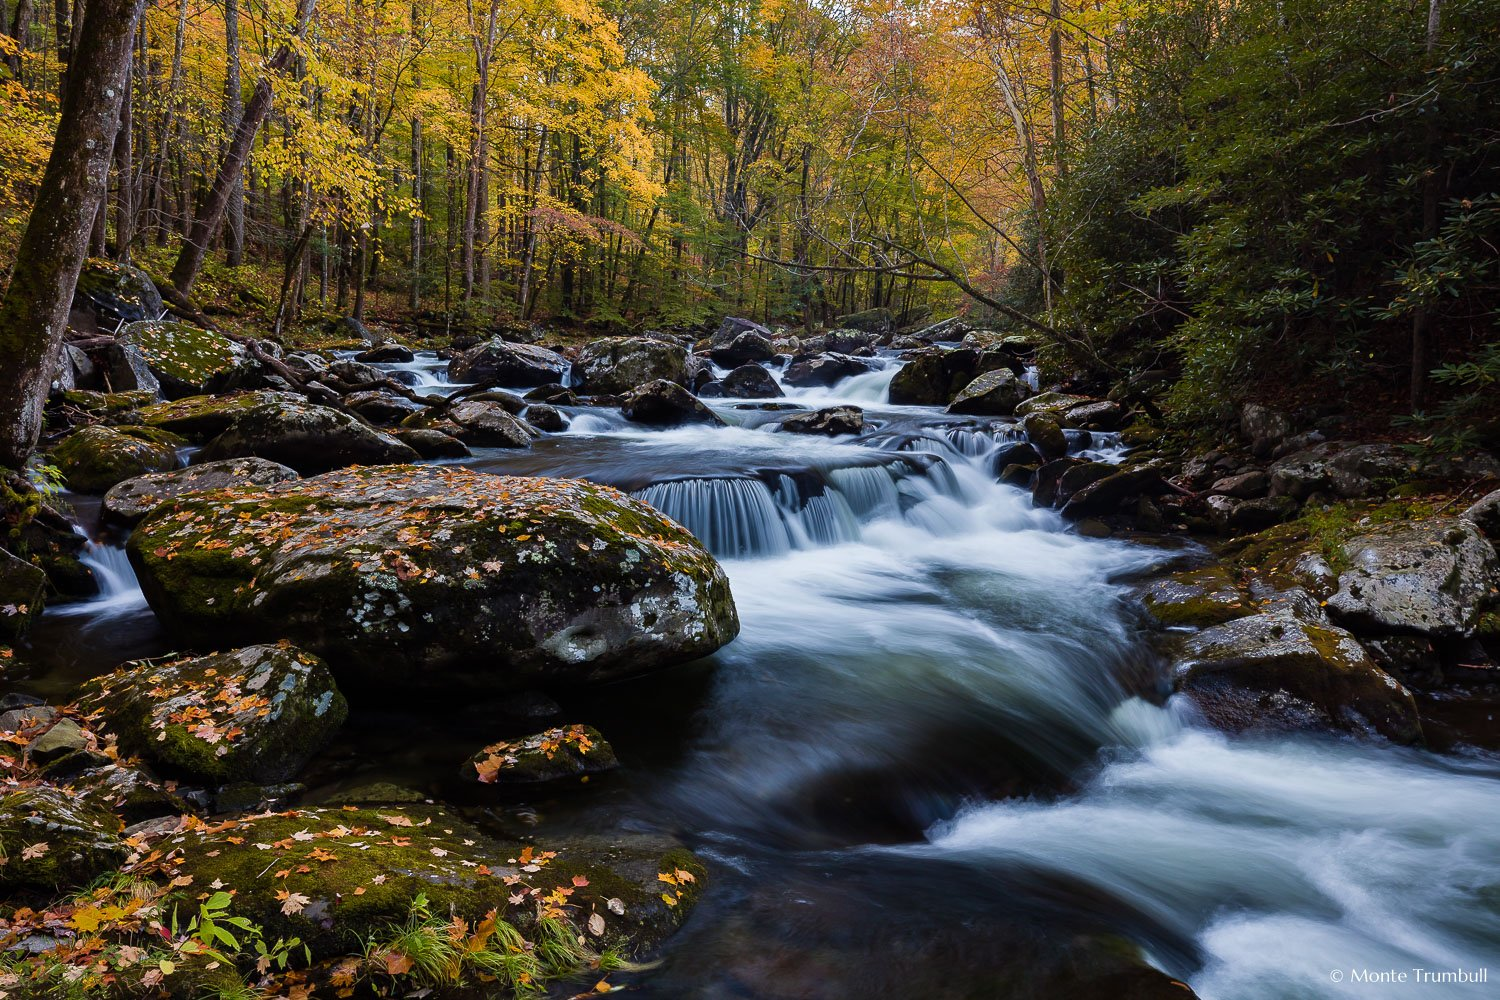 MT-20171031-083236-0008-Autumn-Middle-Prong-Little-River-Great-Smoky-Mountains-National-Park-Tennessee.jpg